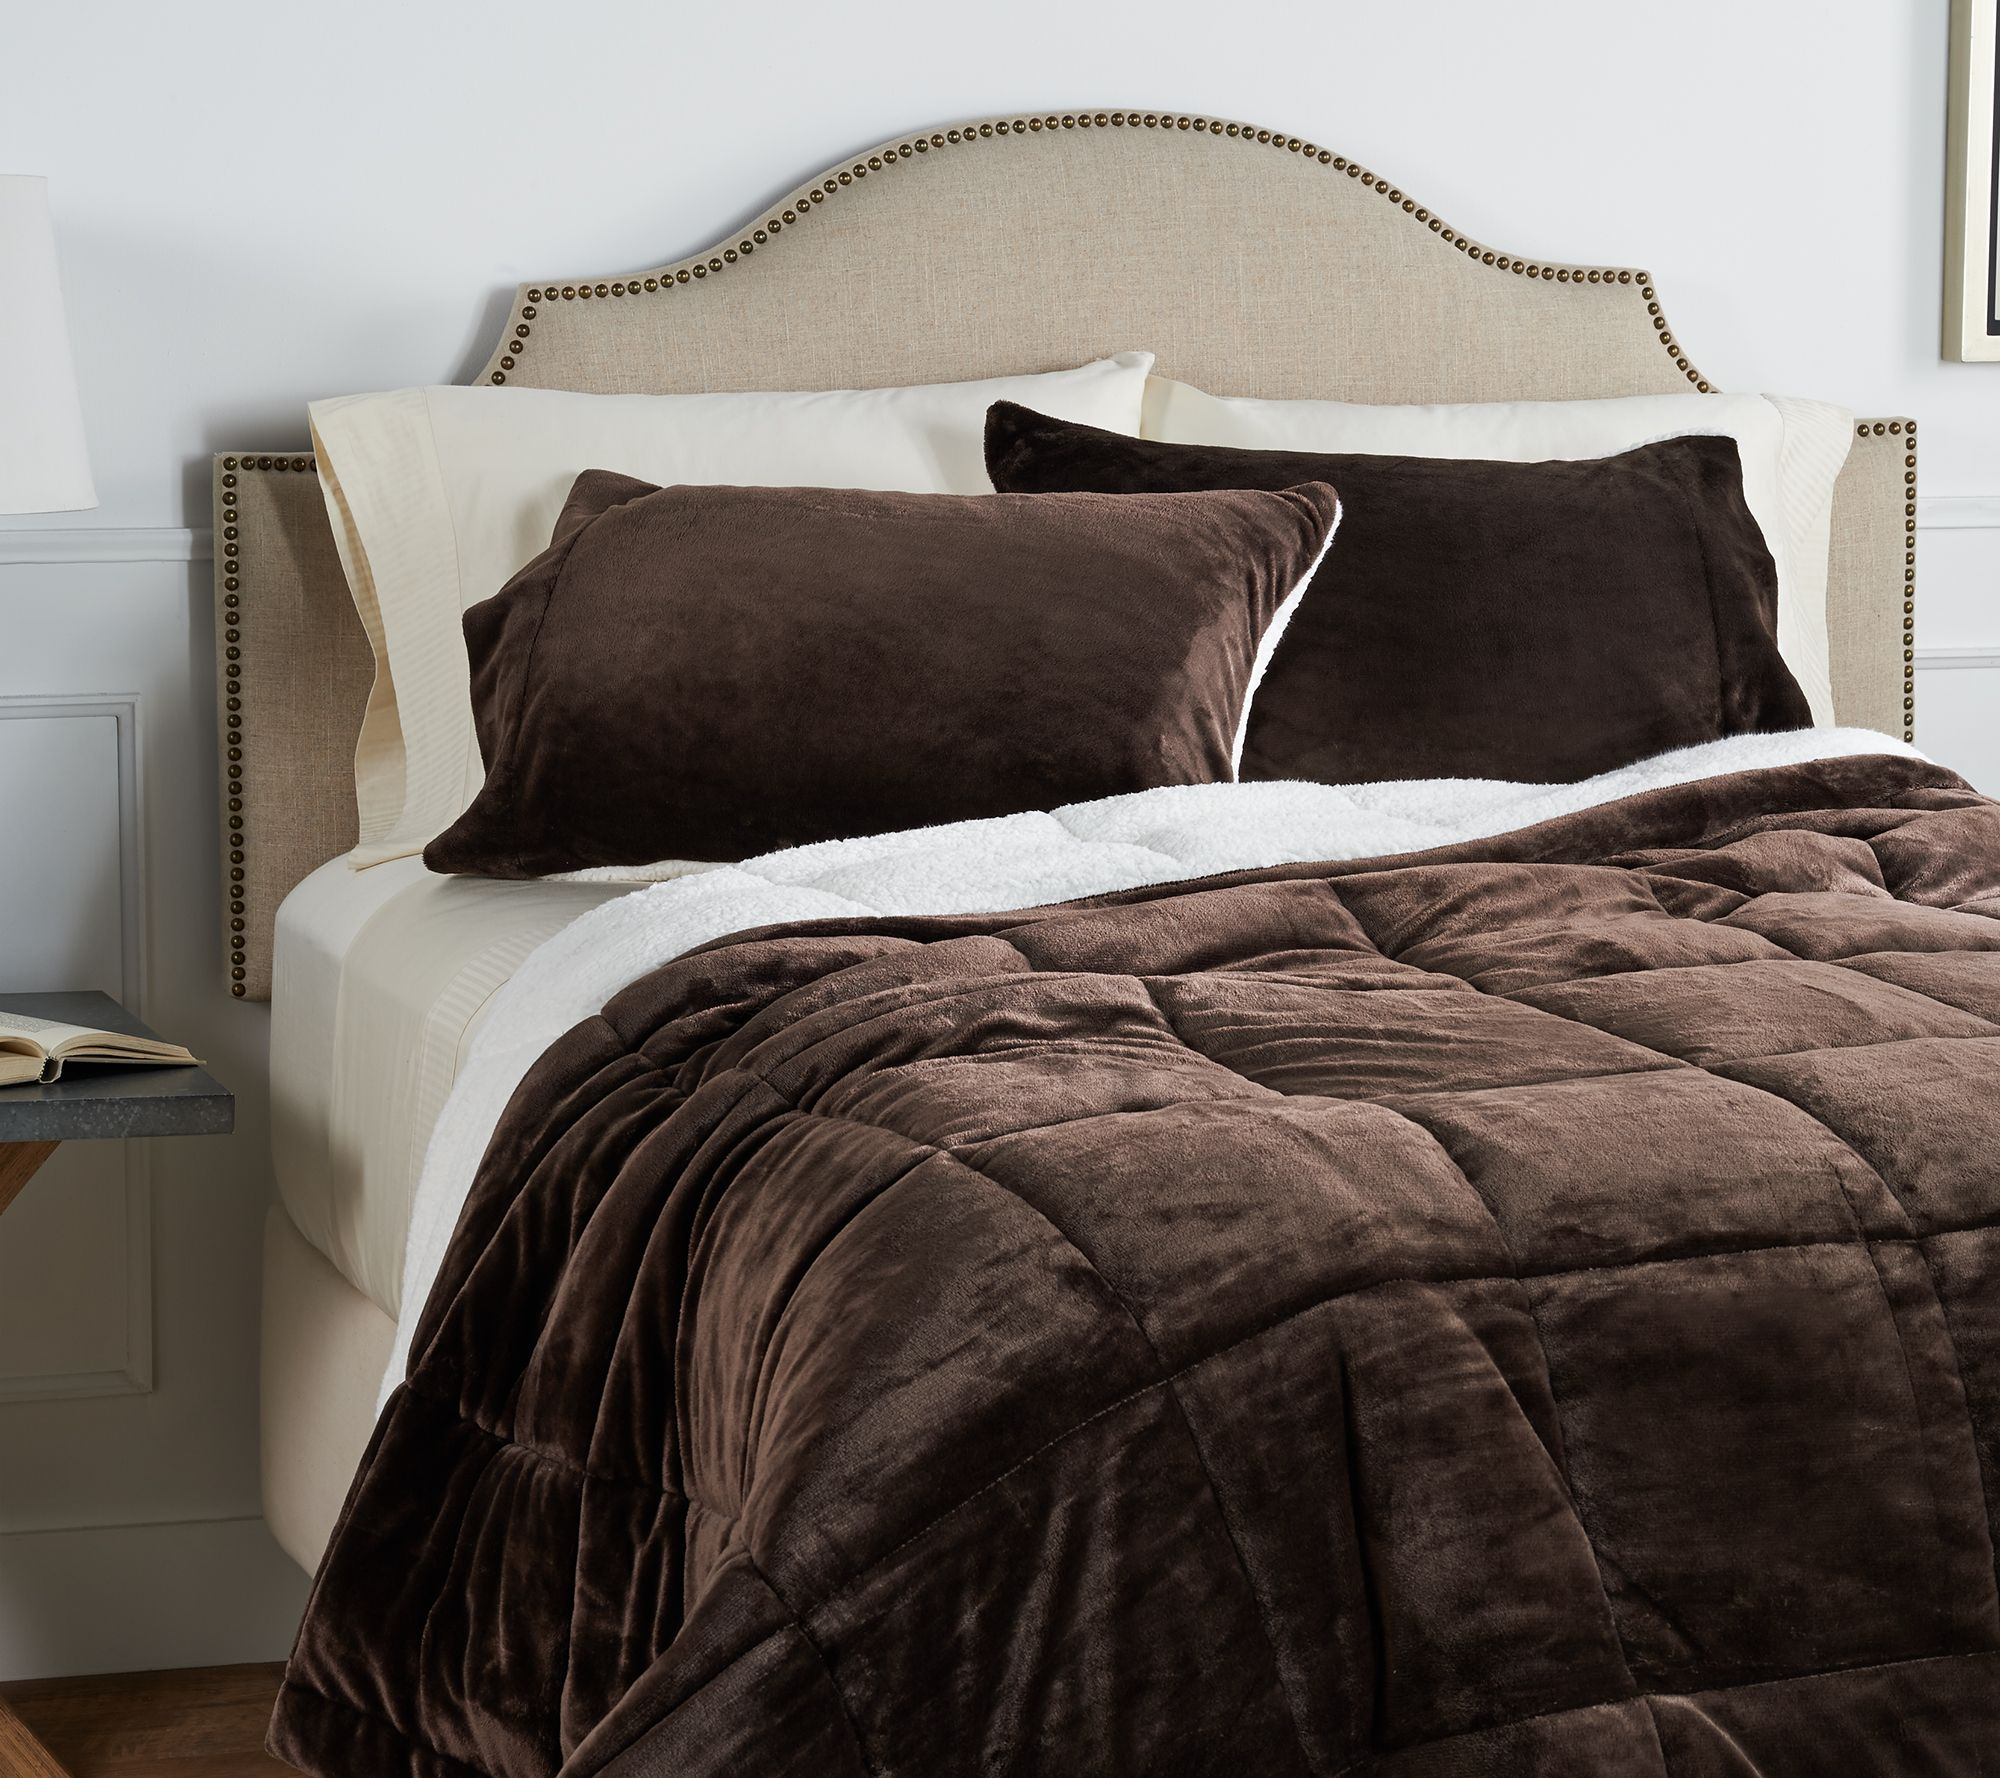 kate palette mini your bedding basel comforter bed up collections with vince set inspirational spade camuto bedroom in forter a jazz anthology metallic s lovely of baby sets luxe